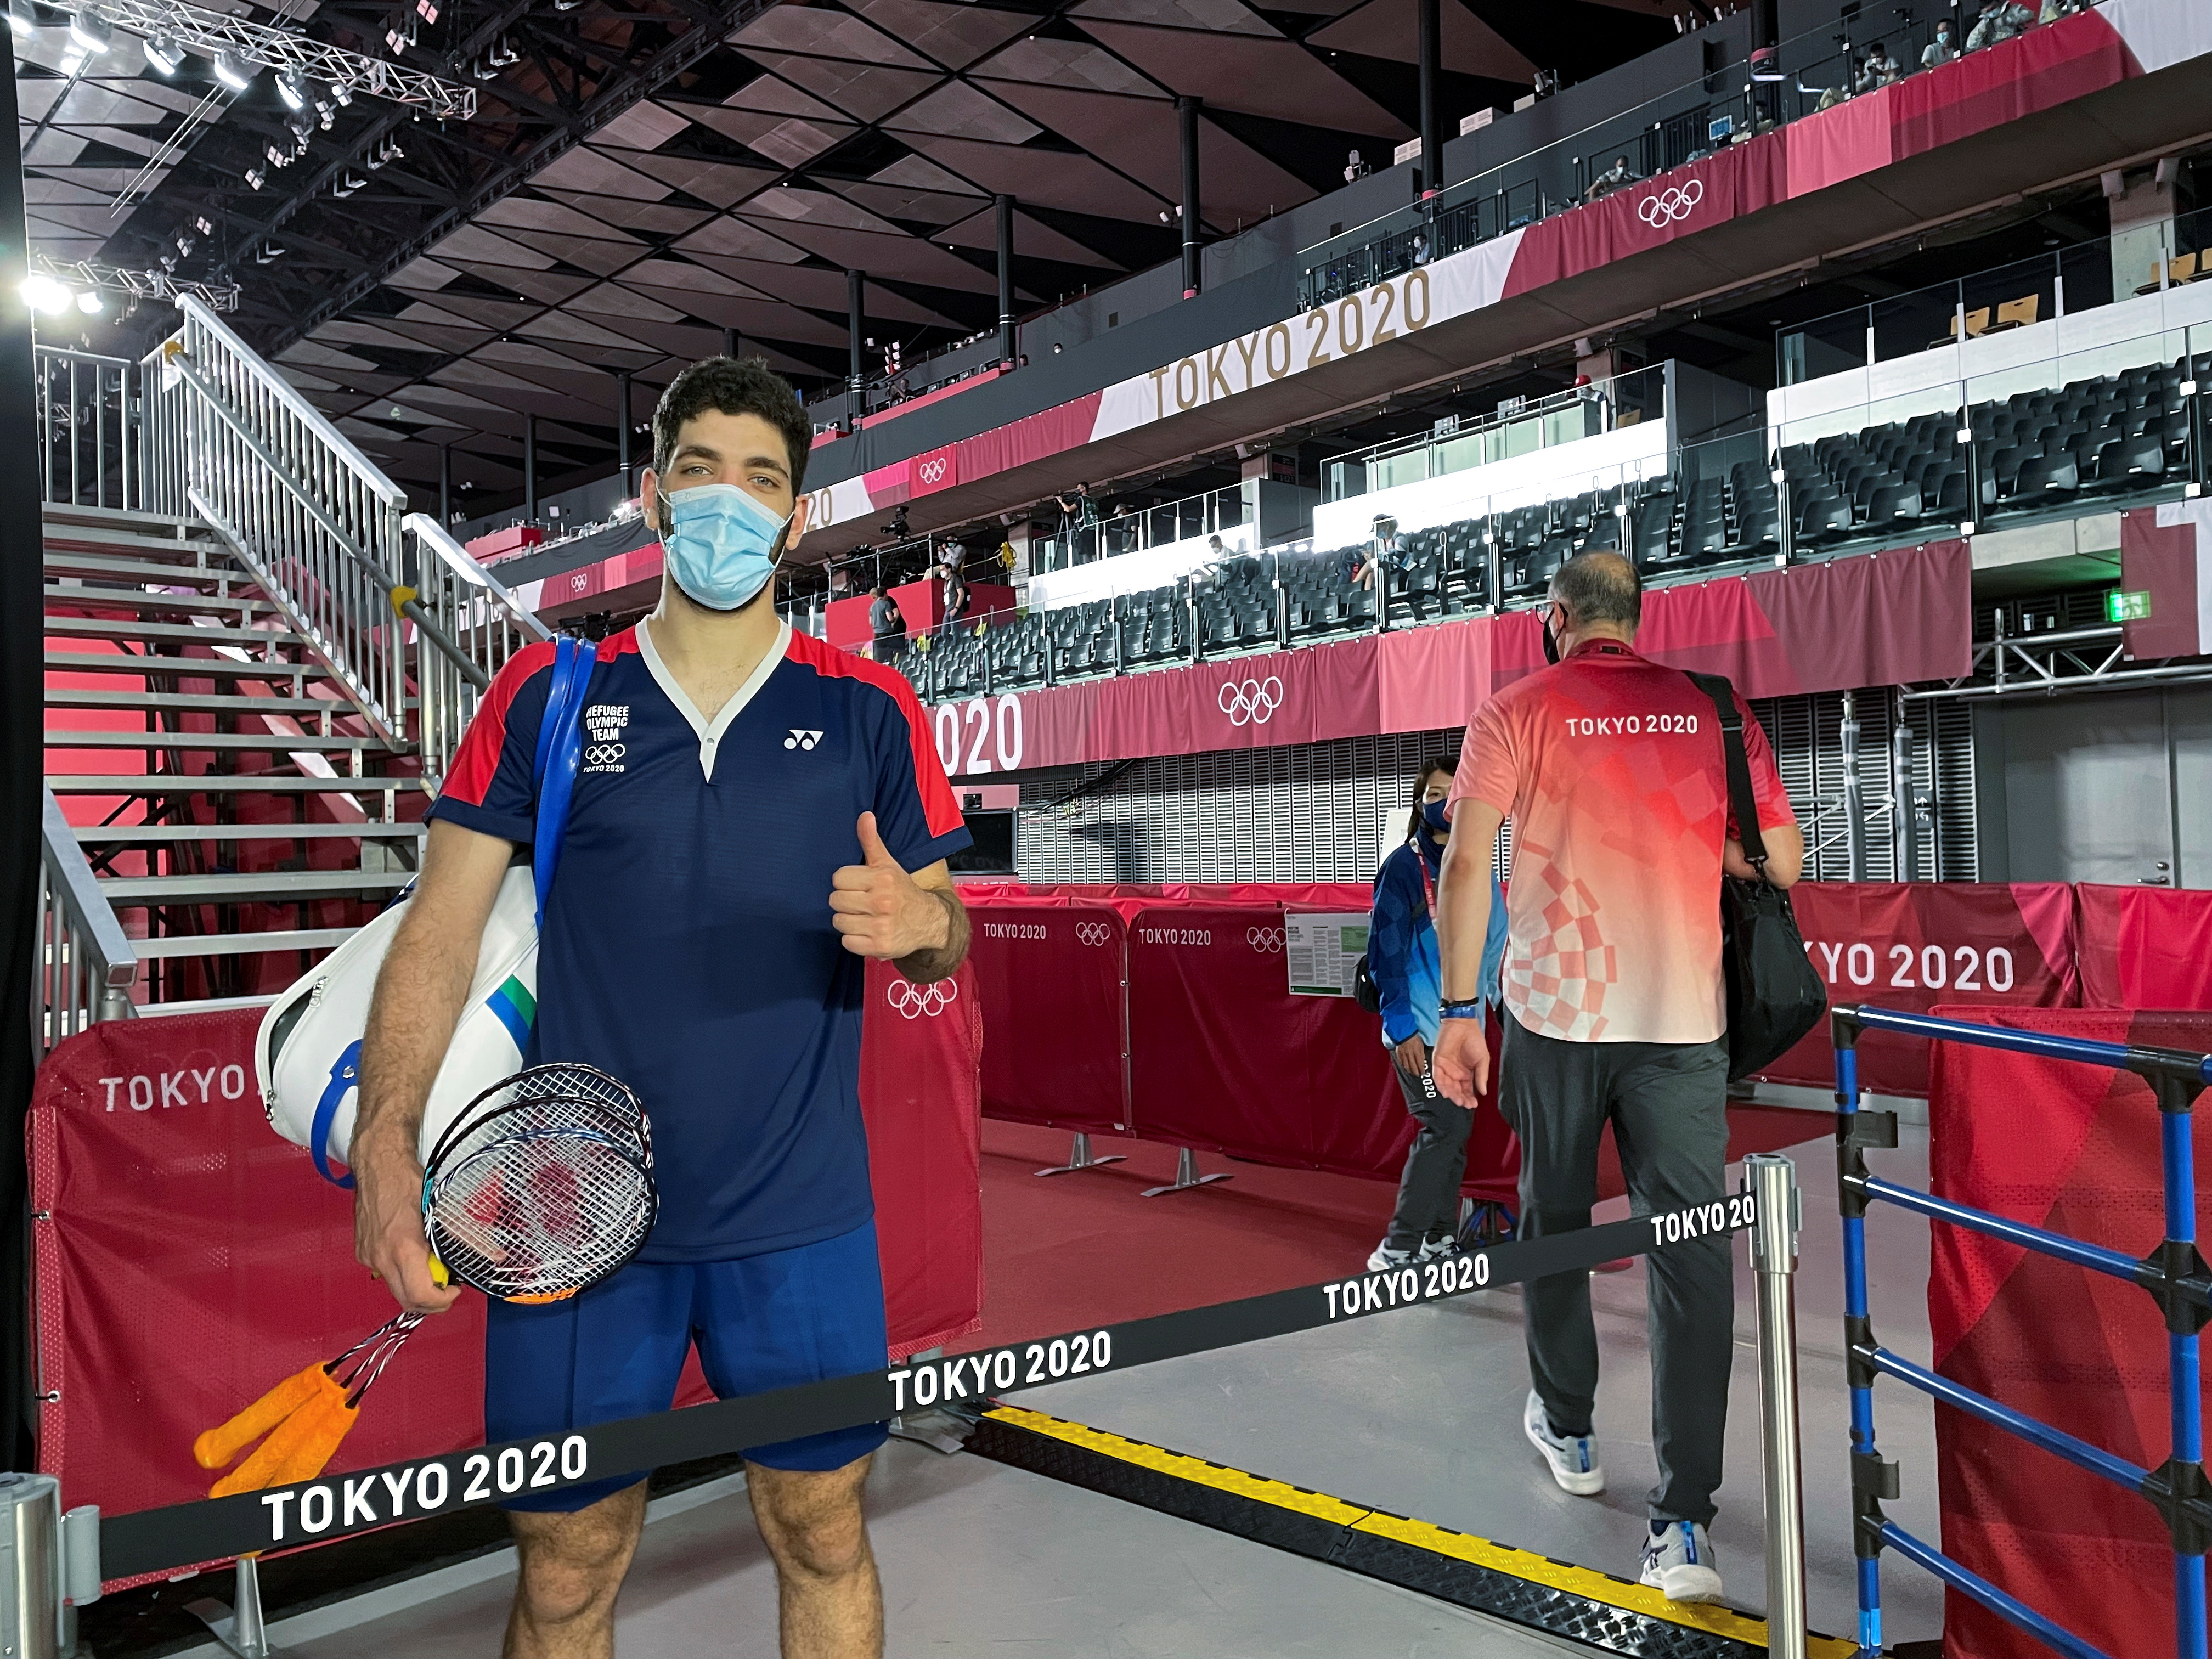 Syrian refugee and Olympic badminton player Aram Mahmoud poses after a match during the Tokyo 2020 Olympics at Musashino Forest Sports Plaza in Tokyo, Japan, July 24, 2021. REUTERS/Richa Naidu